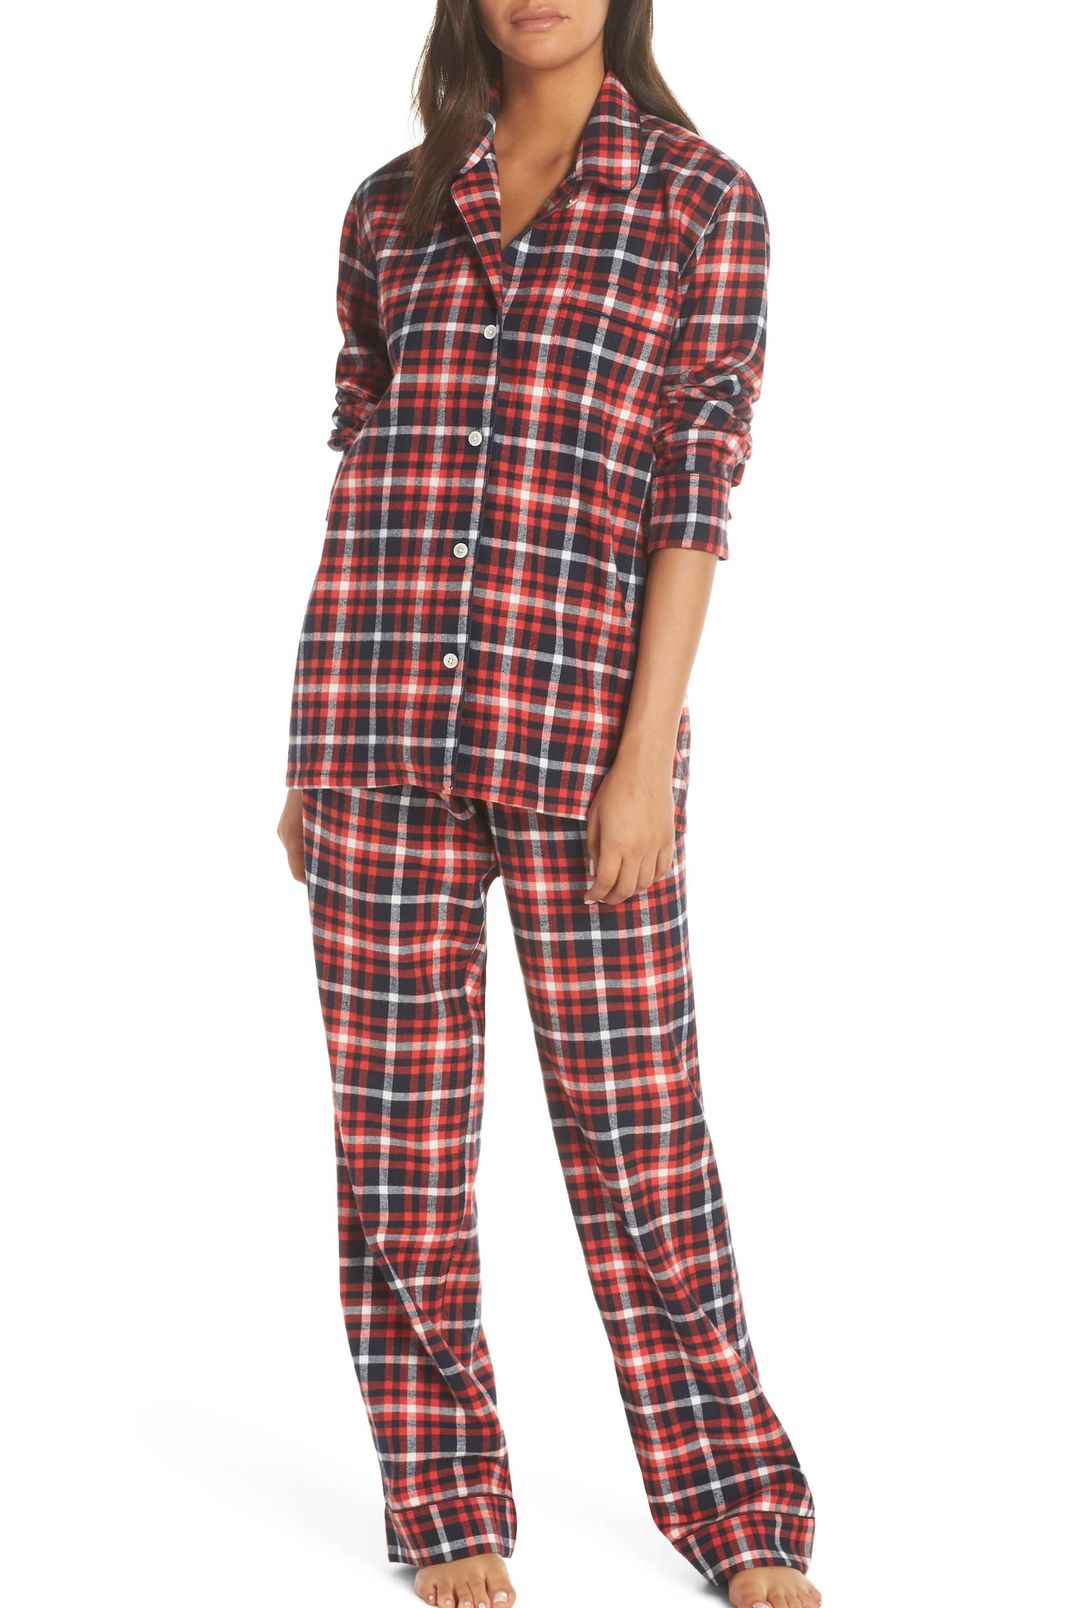 4654880ad7 7 Best Pajamas for Menswear-Inspired Pajamas for Women 2018